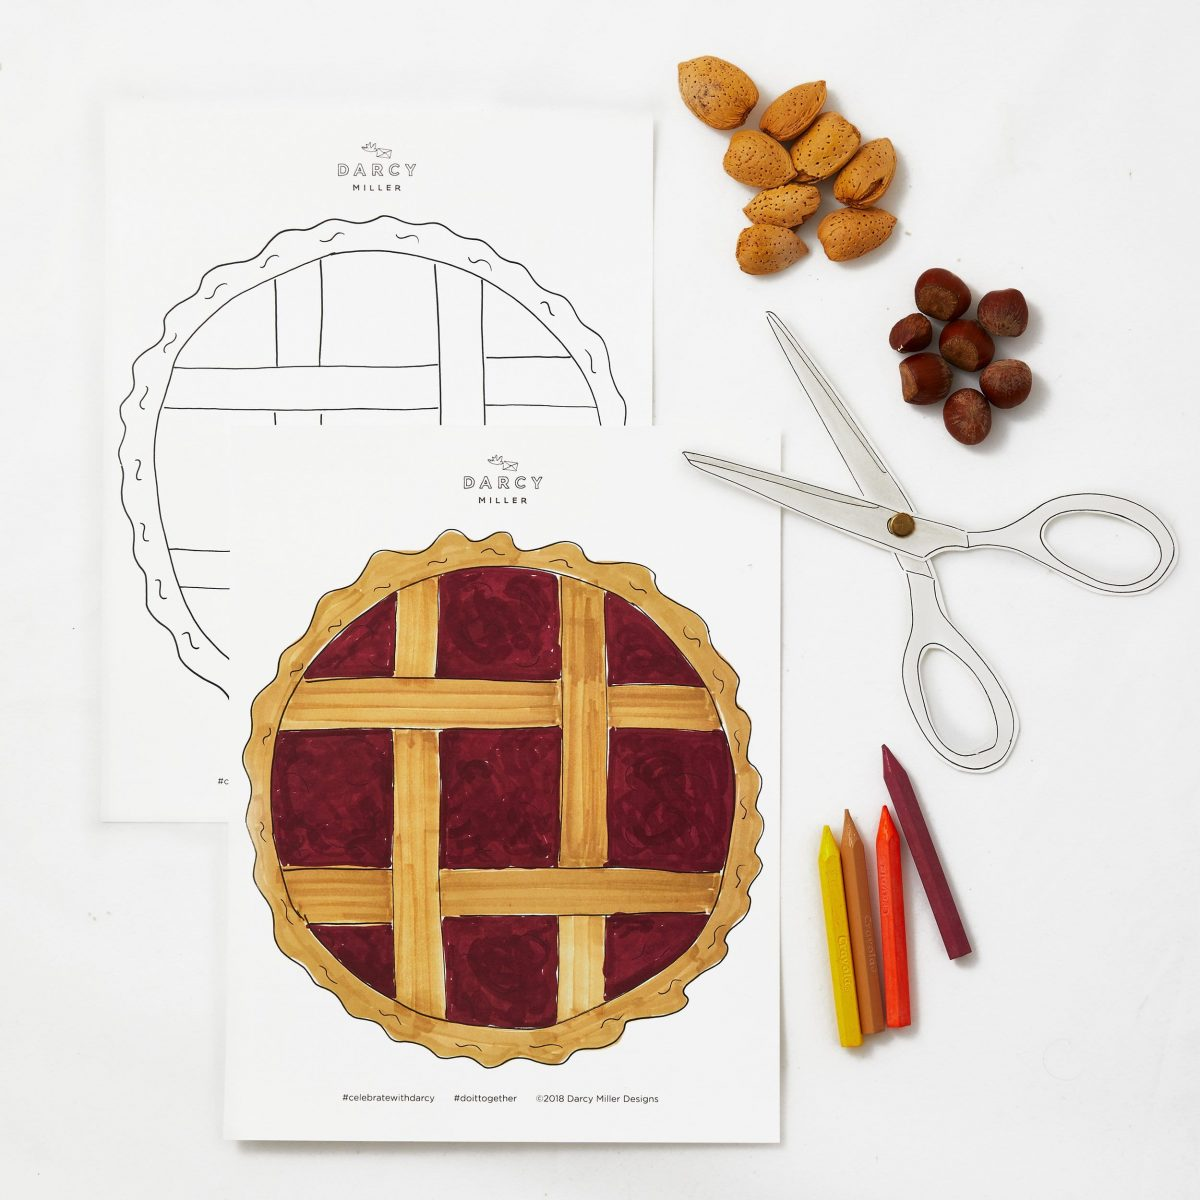 This pie placemat is definitely something to be thankful for! Print out the colored template and let everyone choose their playing pieces (nuts, candies, and small fruit all work) for rousing pre-dinner games of Tic Tac Toe.